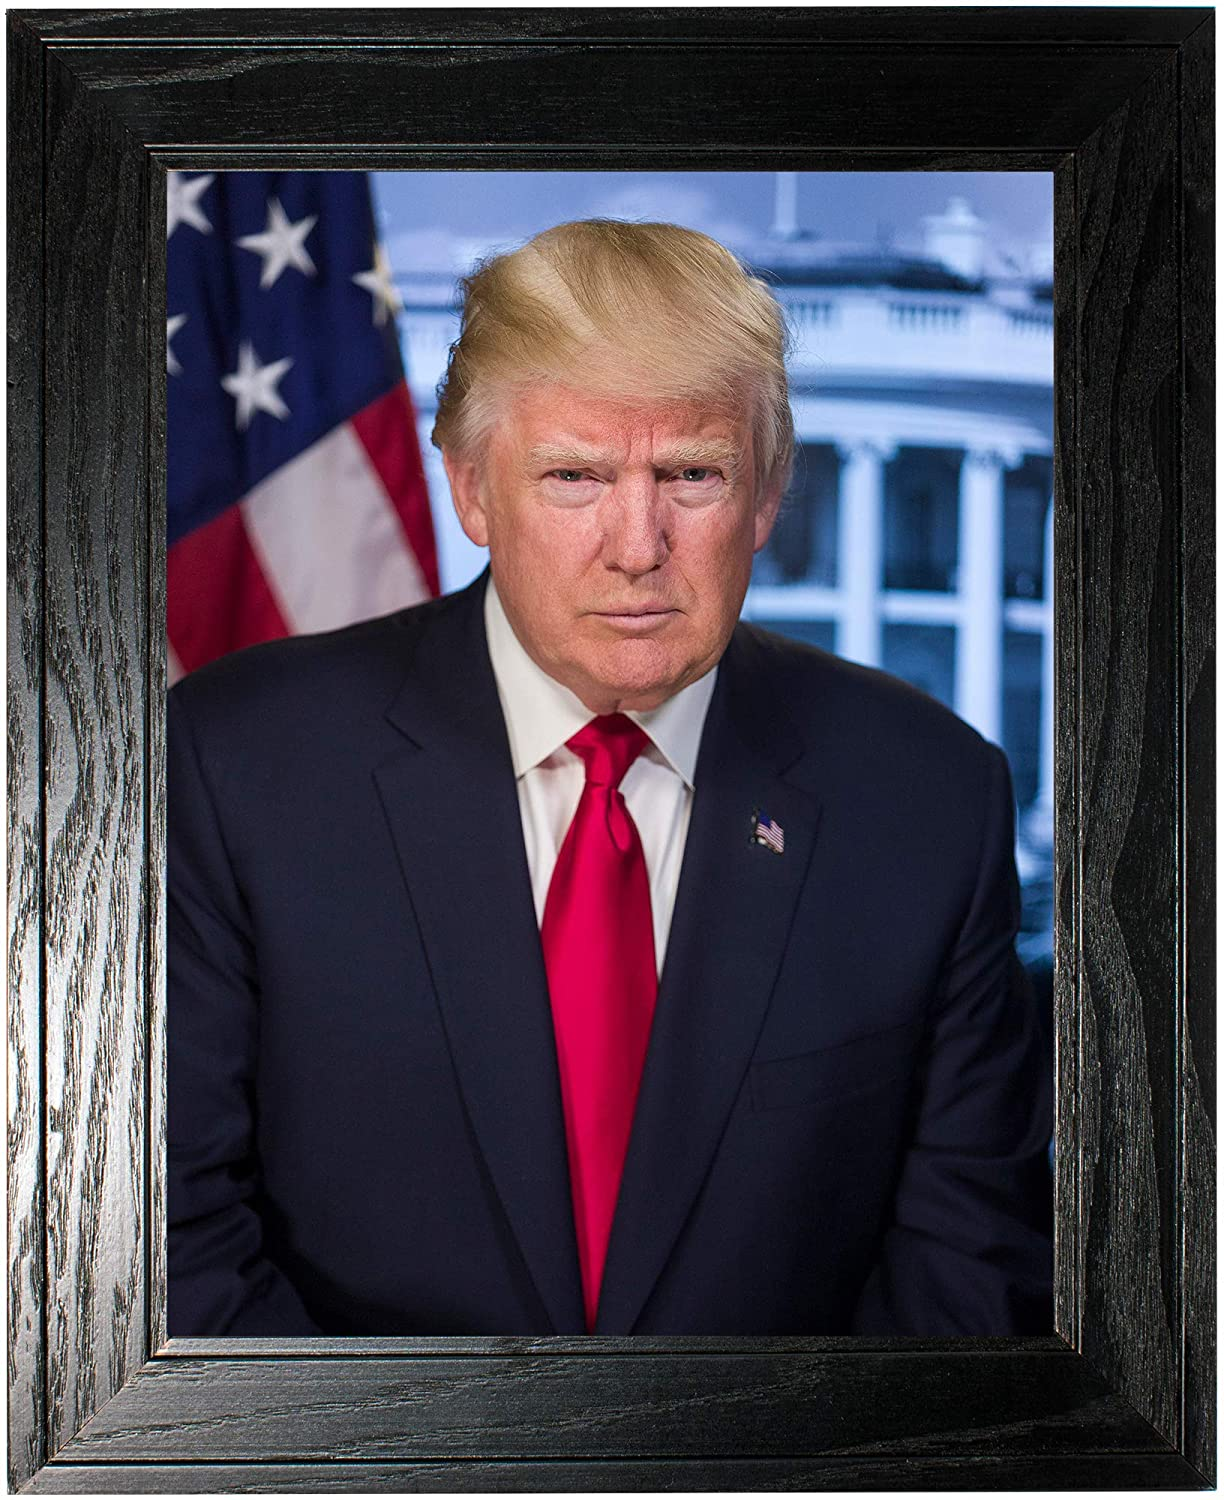 Donald Trump Photograph in a Black Pine Frame - Historical Artwork from 2016 - (20